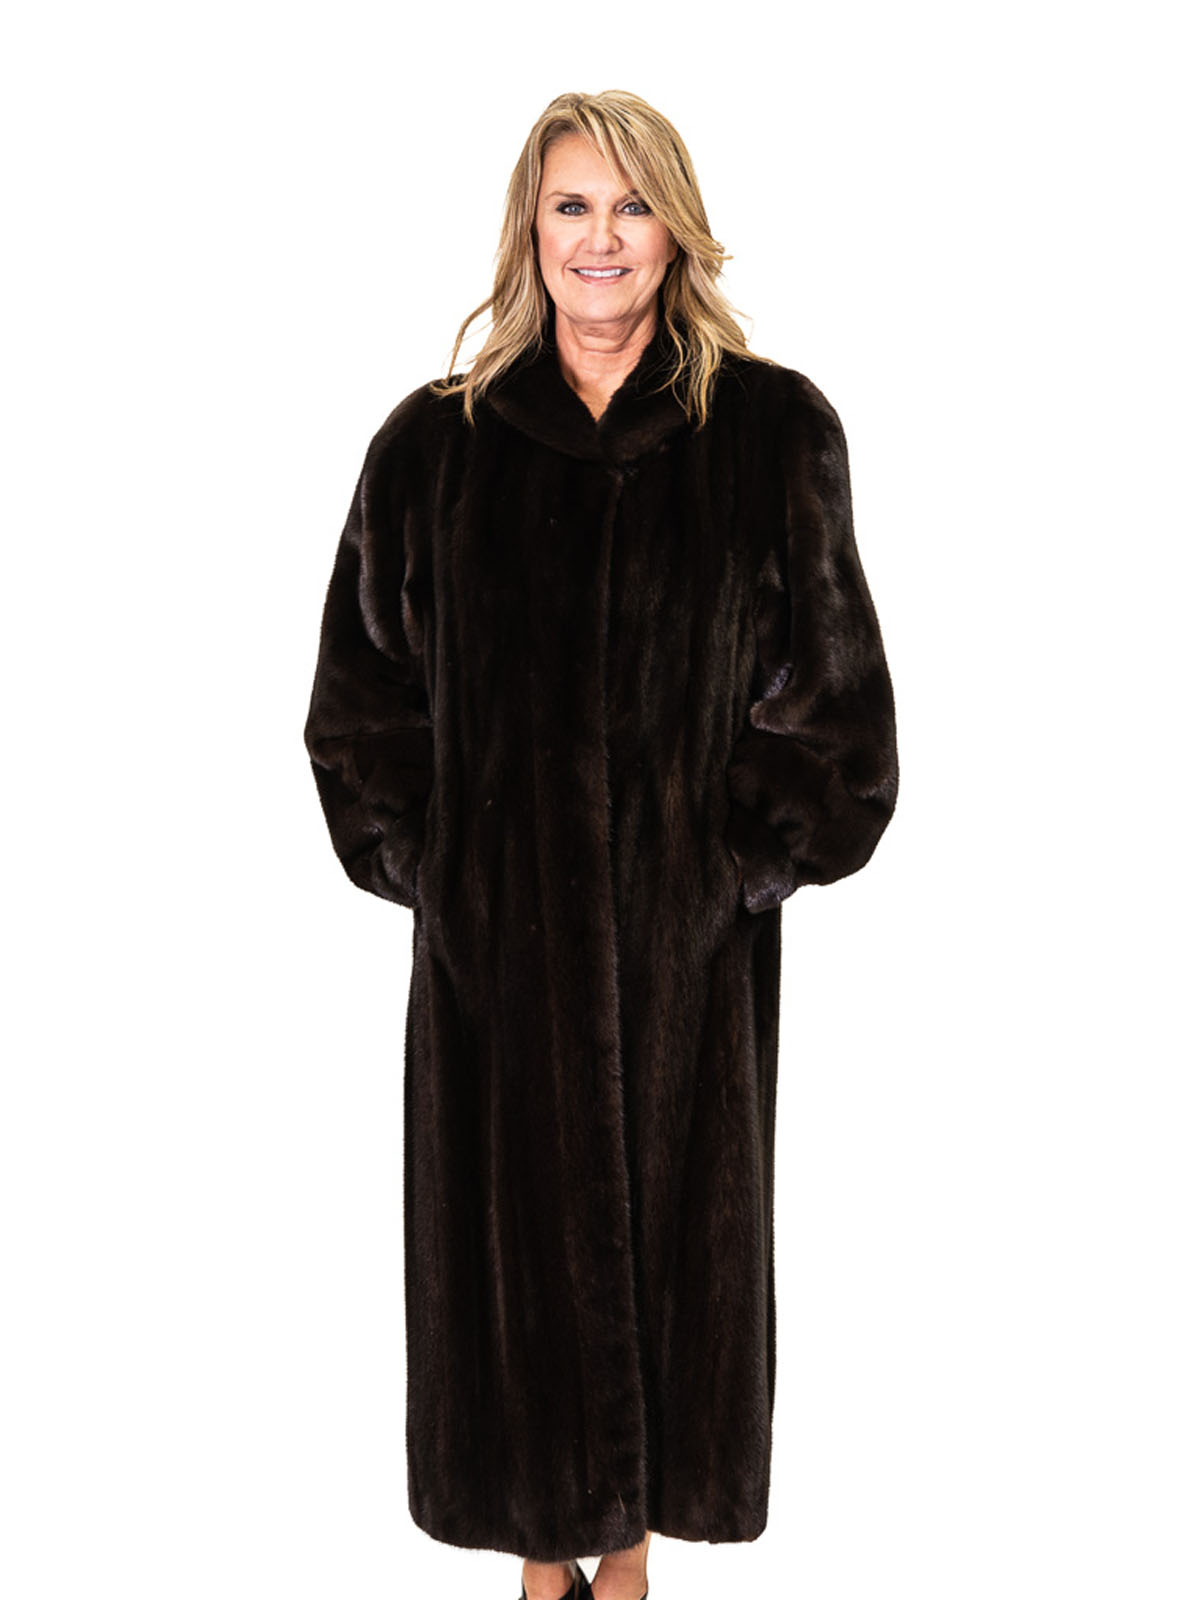 Ranch Mink Coat with Diagonal Sleeve Design